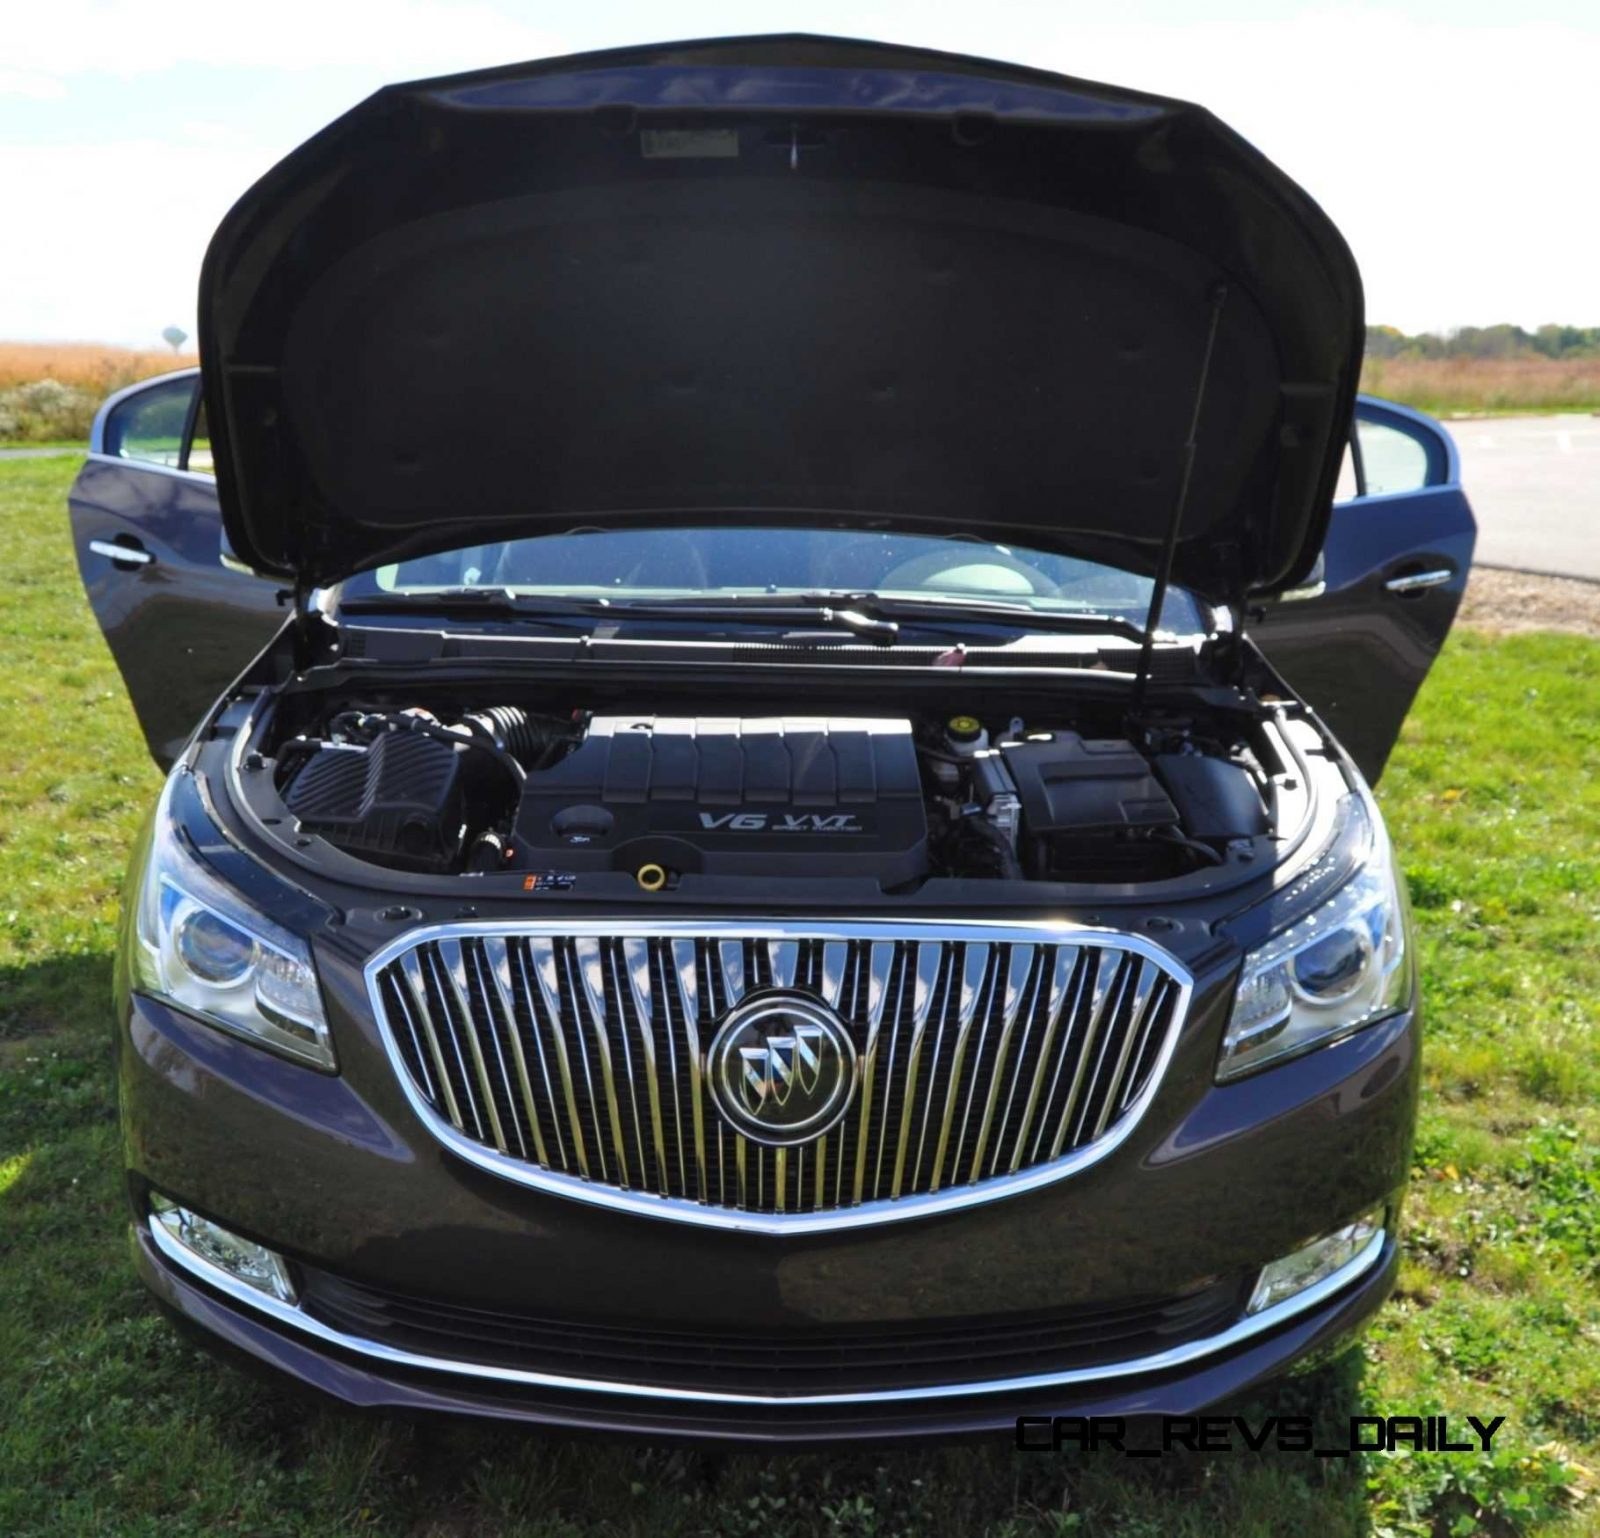 Driven Car Review - 2014 Buick LaCrosse Is Huge, Smooth and Silent25